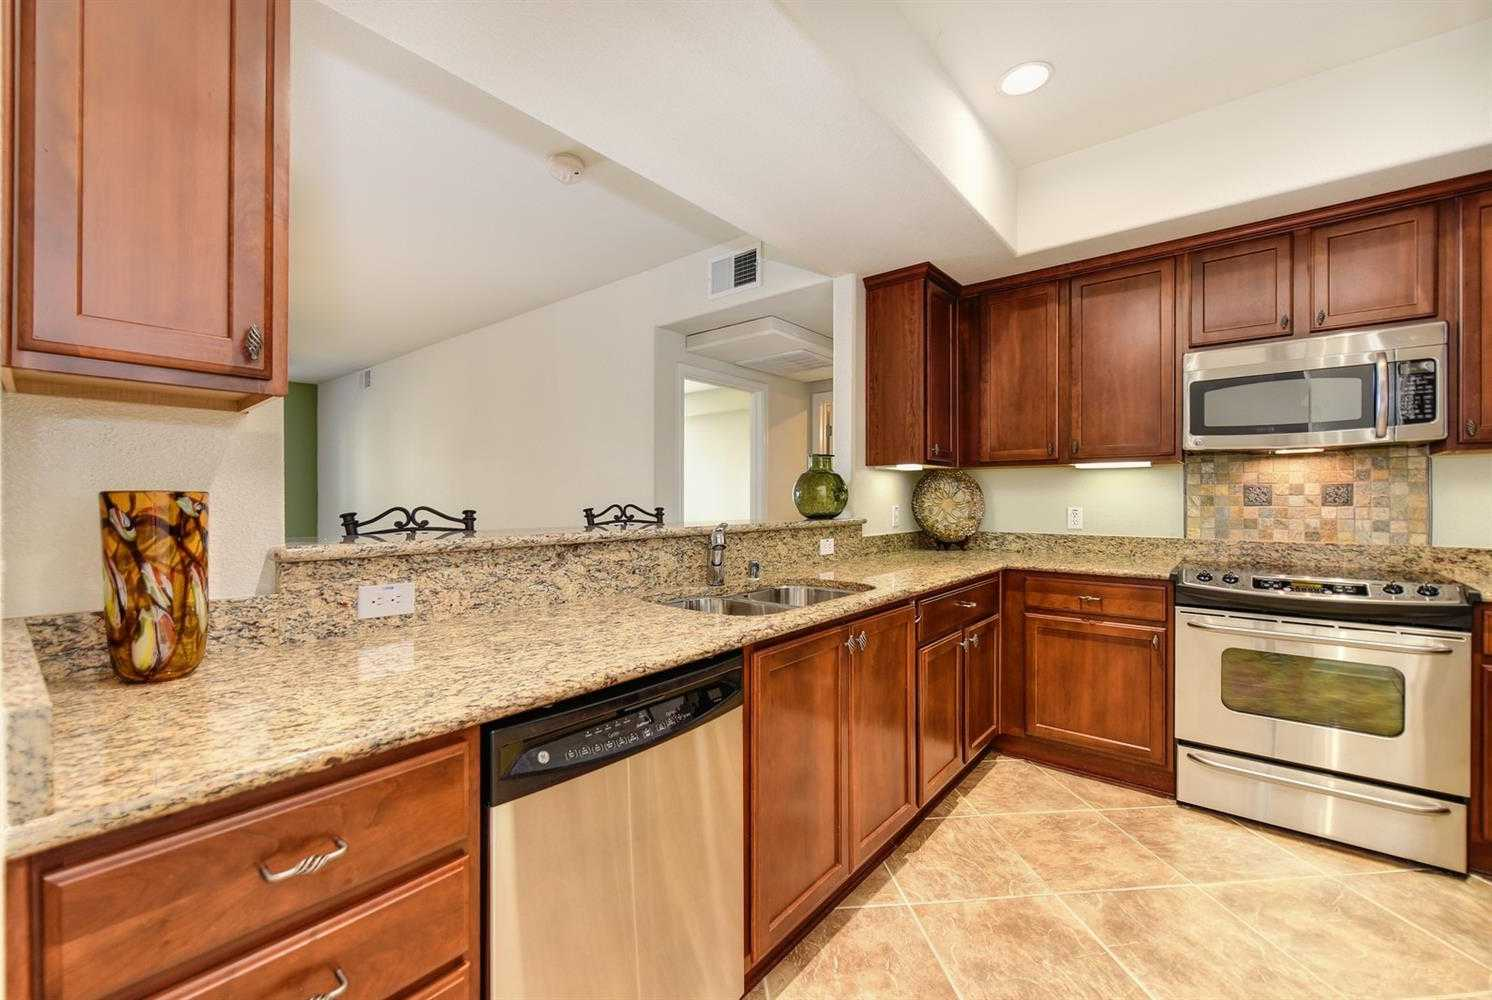 $366,000 - 2Br/2Ba -  for Sale in Lincoln